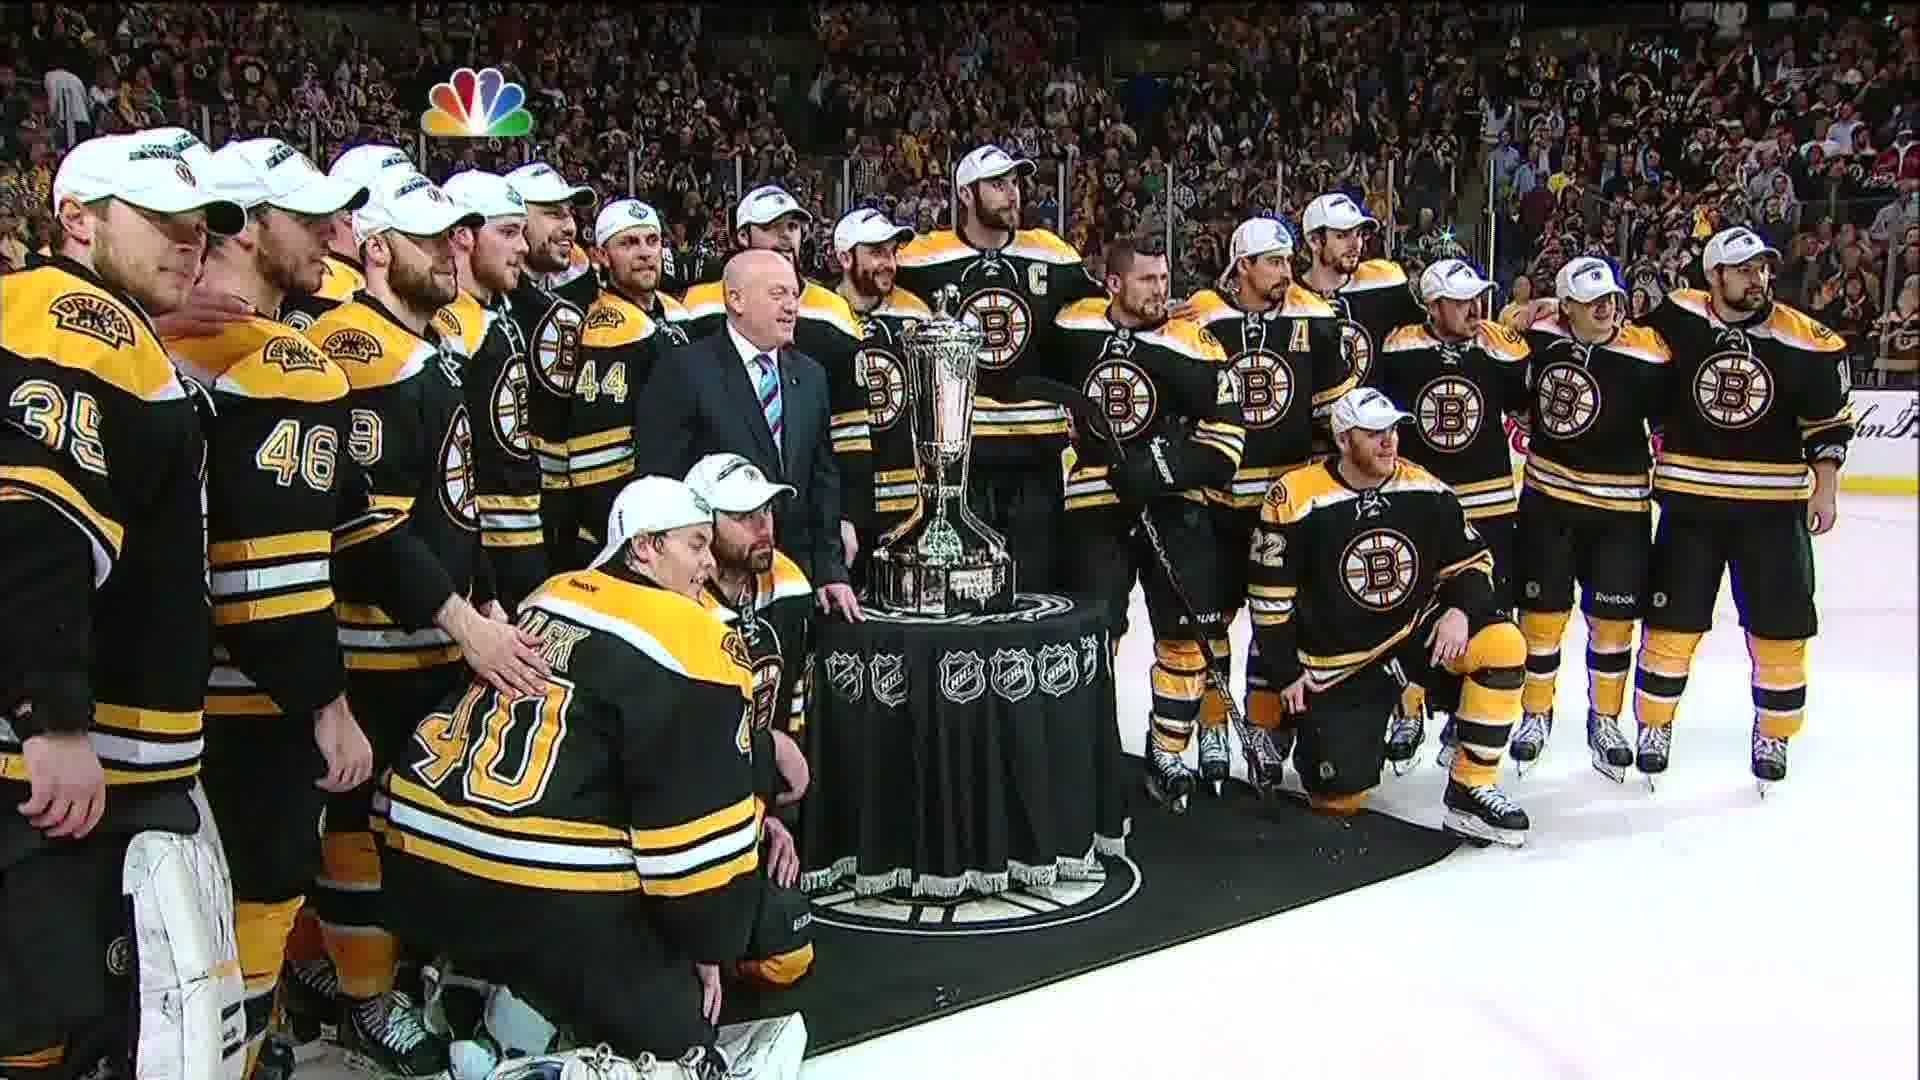 Bruins win conference finals